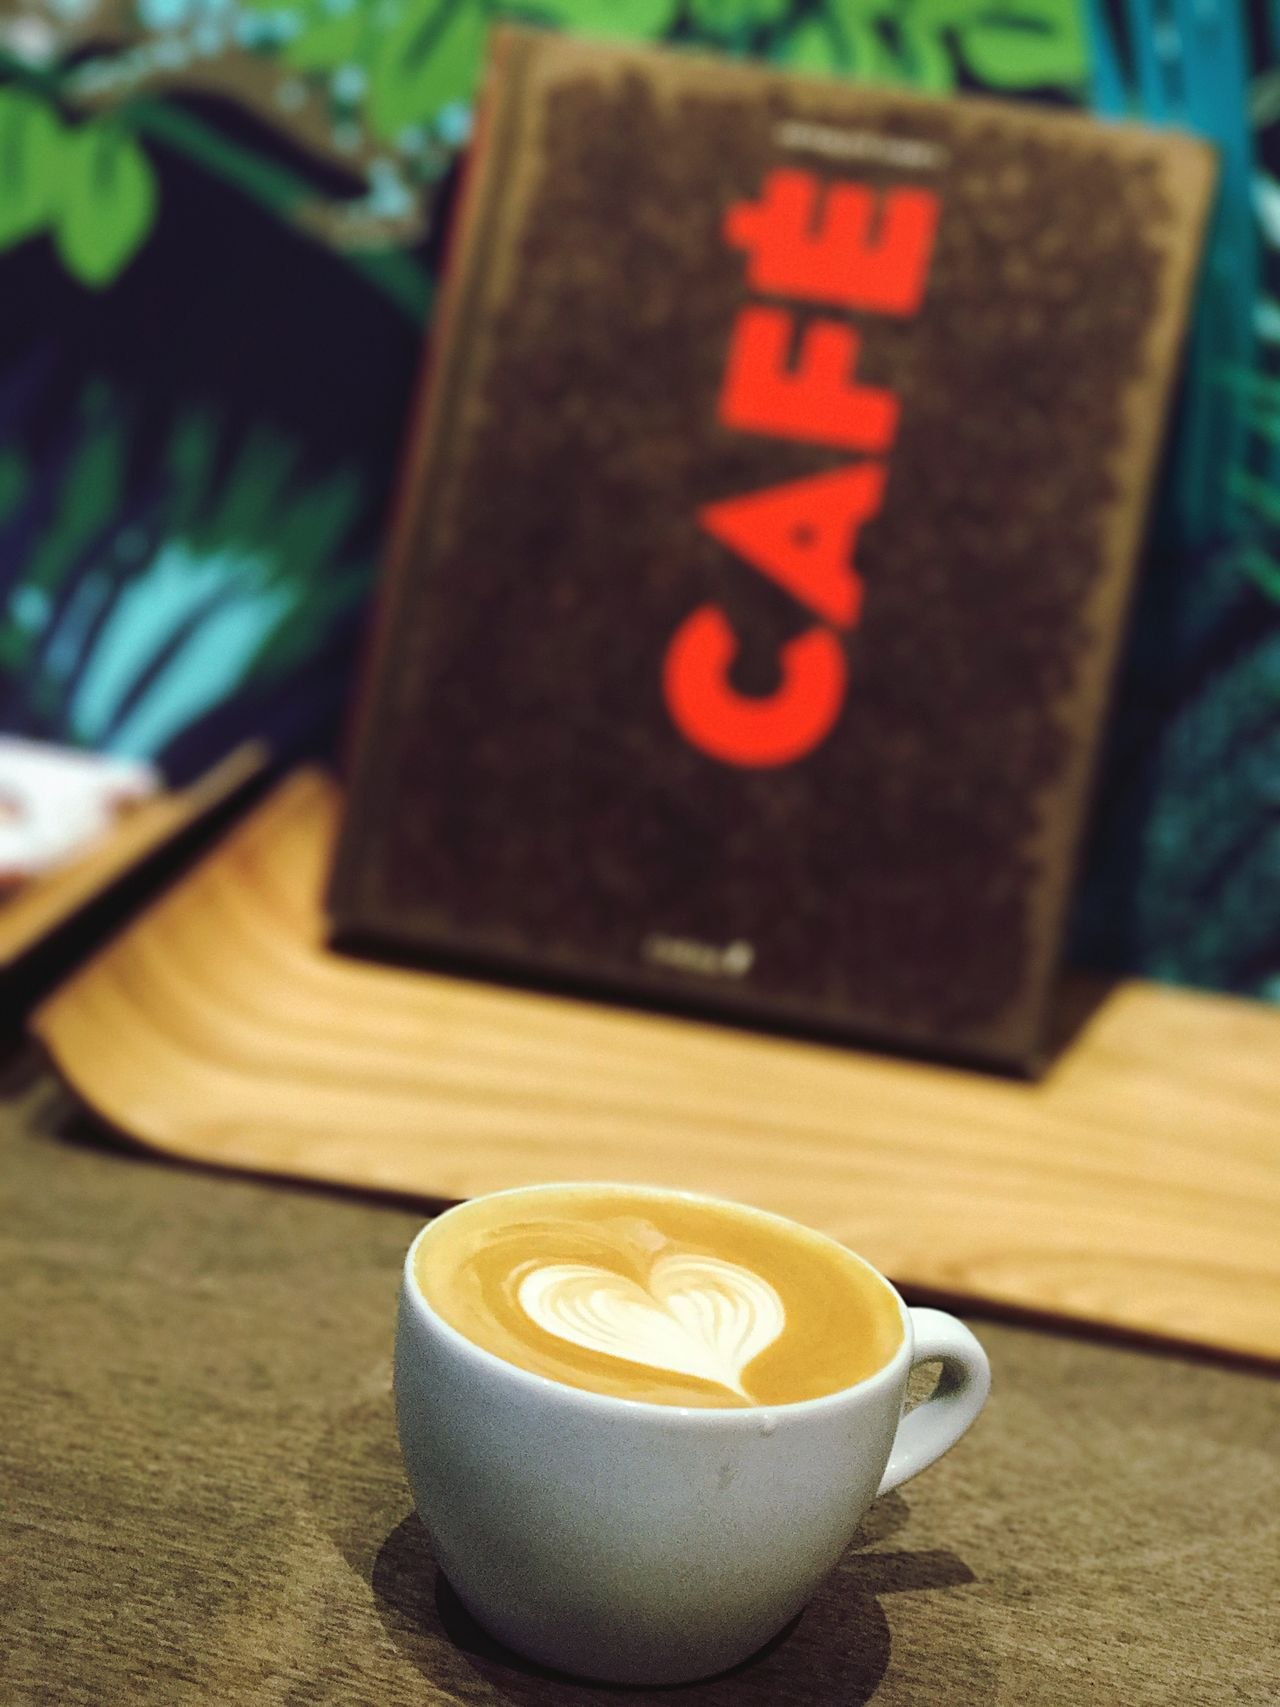 El Café ☕️ Coffee Cup Drink Coffee - Drink Food And Drink Refreshment Close-up Table No People Indoors  Freshness Froth Art Latte Frothy Drink Day Paris